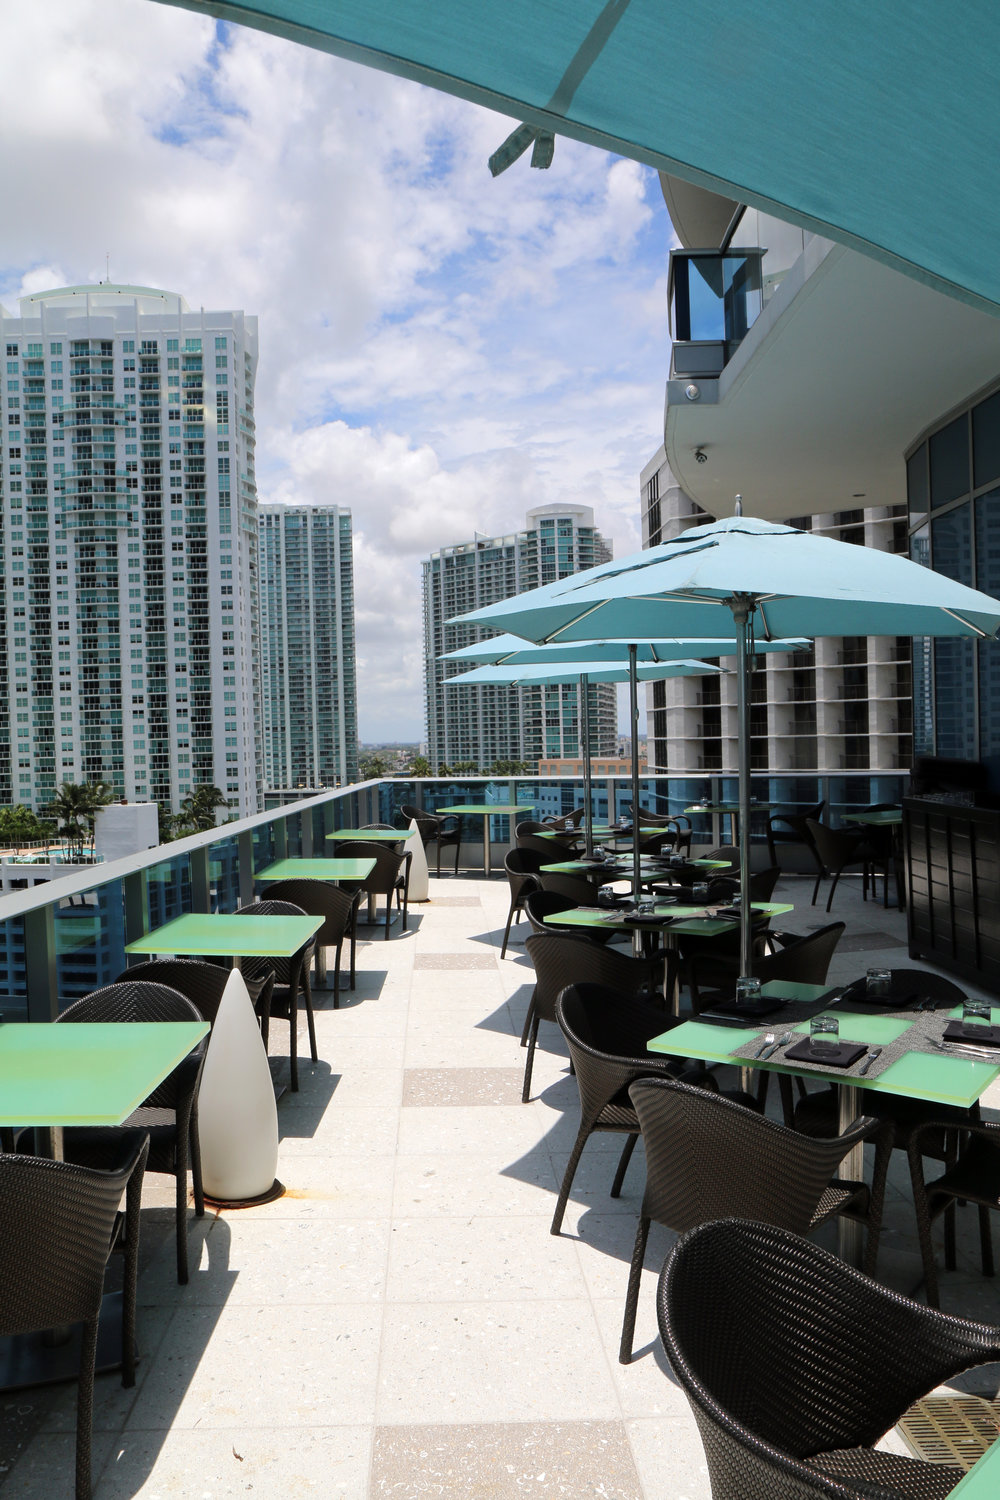 The ultimate guide to Miami & Fort Lauderdale, Florida by lifestyle and travel blogger Bri Sul